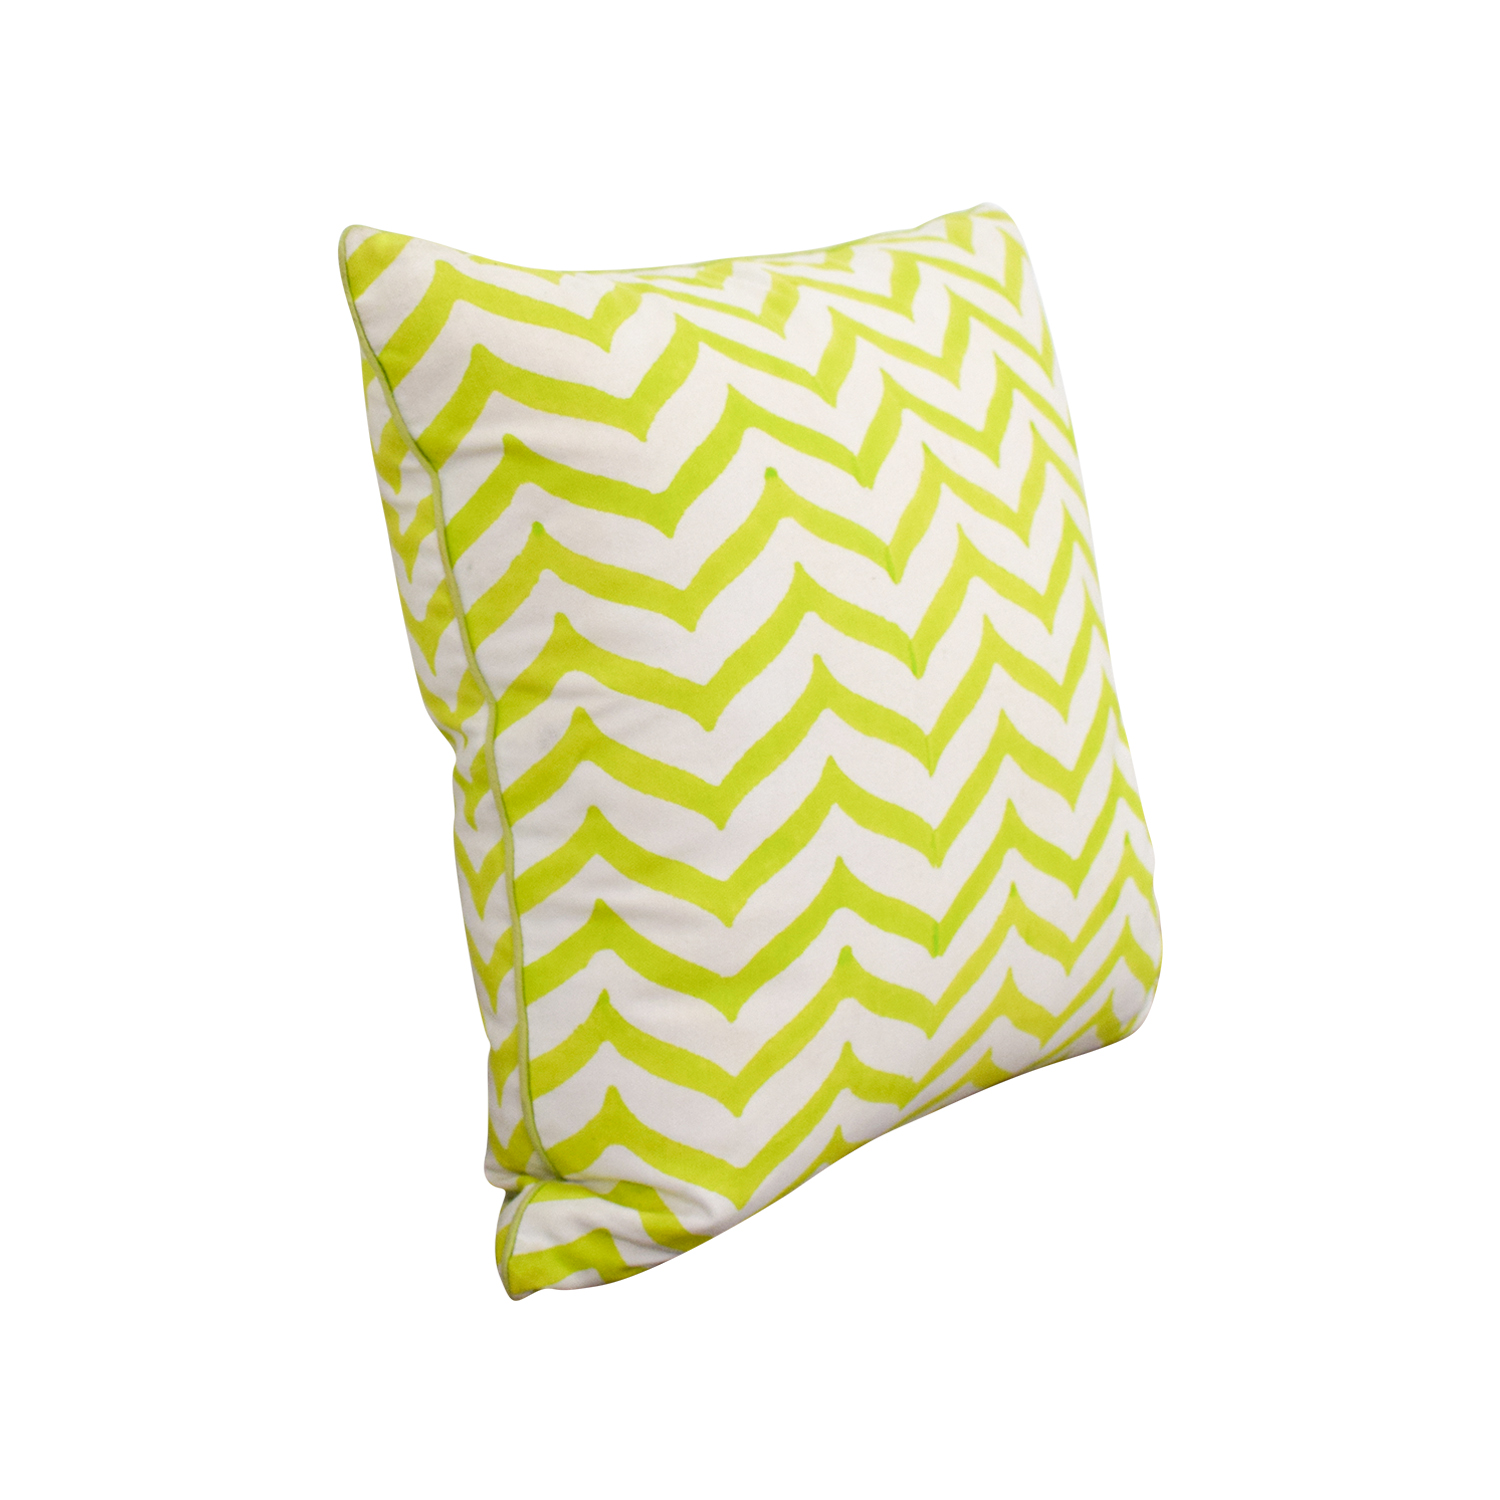 Roller Rabbit Roller Rabbit Green and White Zig Zag Toss Pillow nj